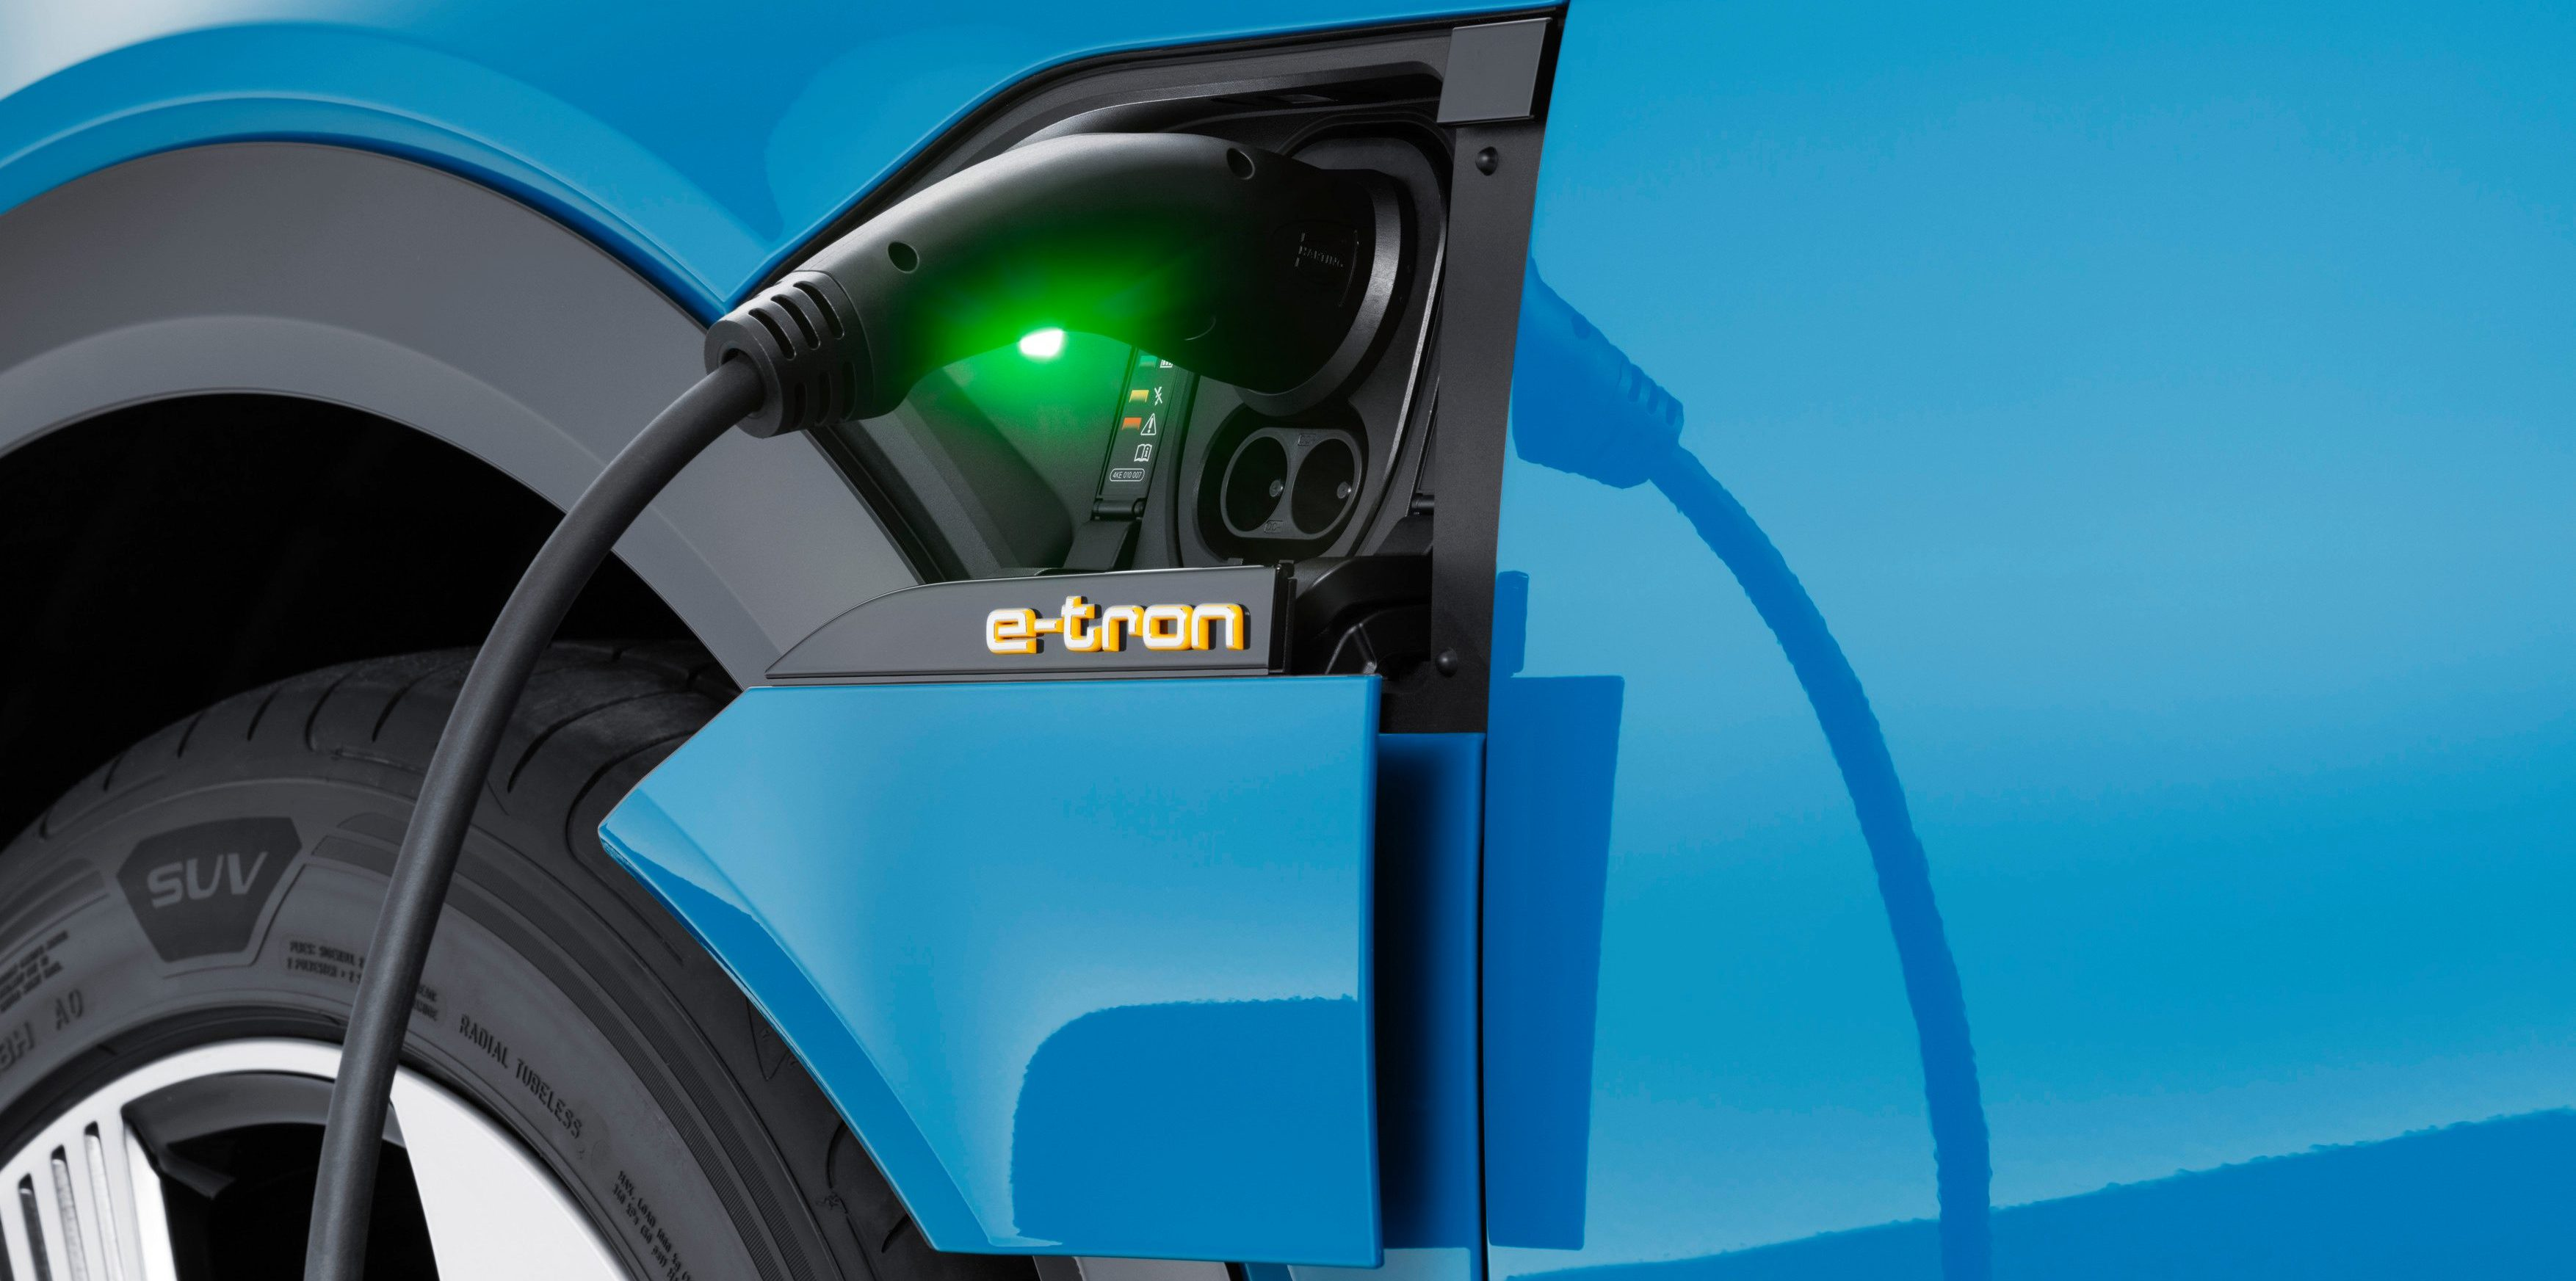 electrek.co - Fred Lambert - Amazon is going to sell electric car chargers with installation as a turn-key solution